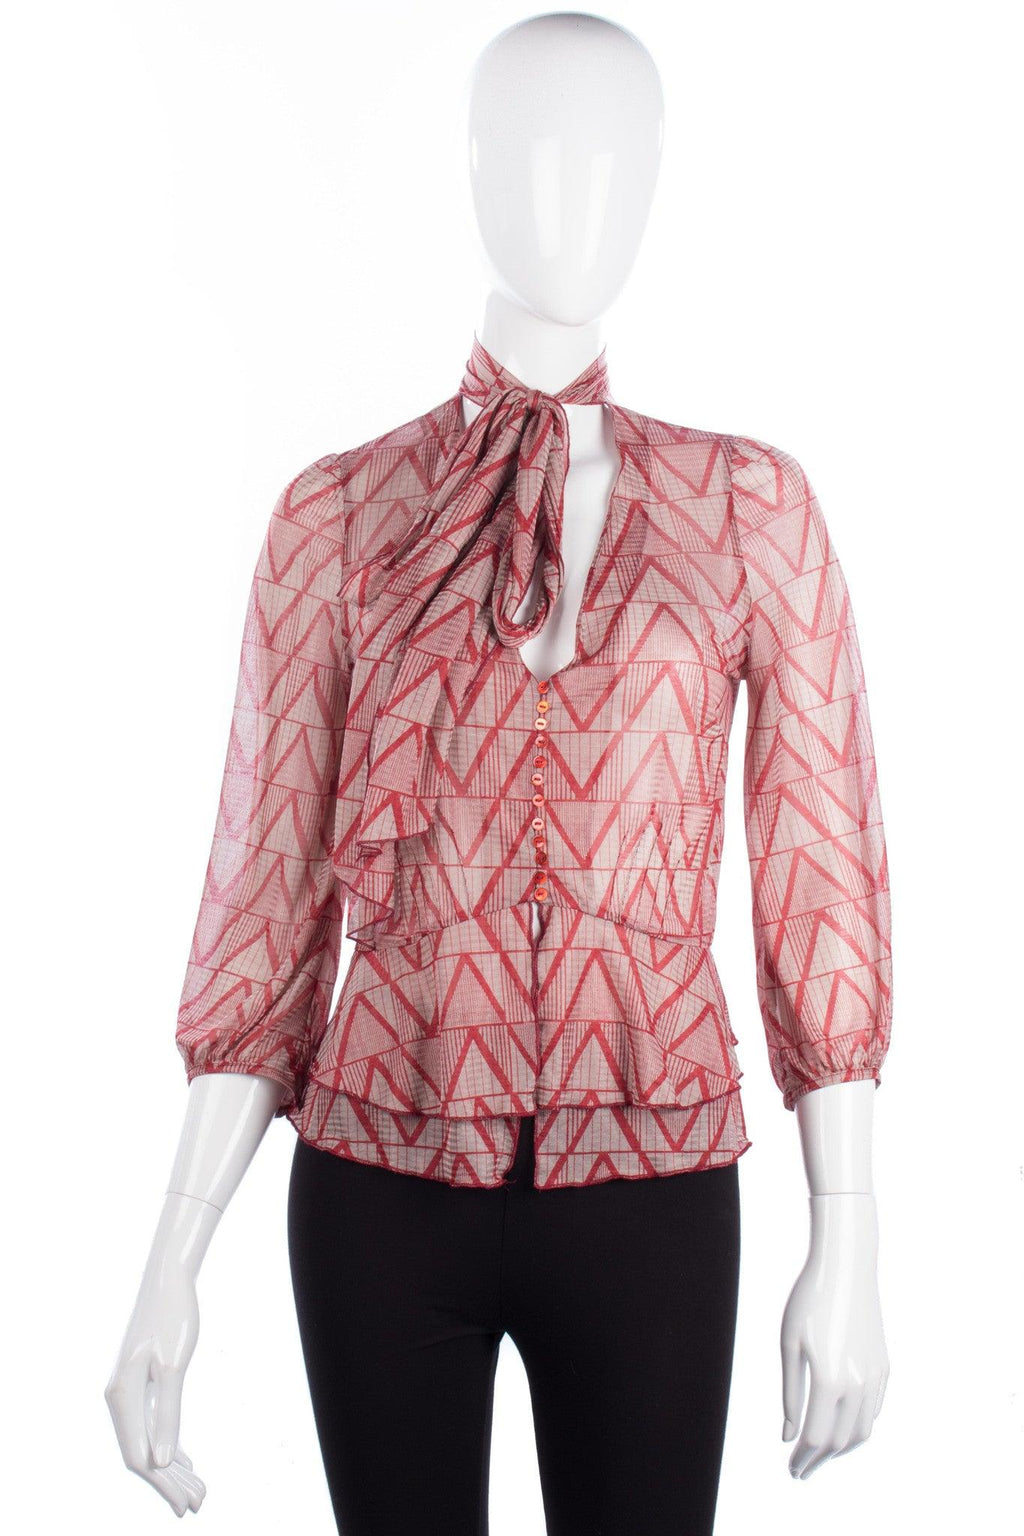 Kookai Blouse with Bow Red Geometric Pattern Size 10